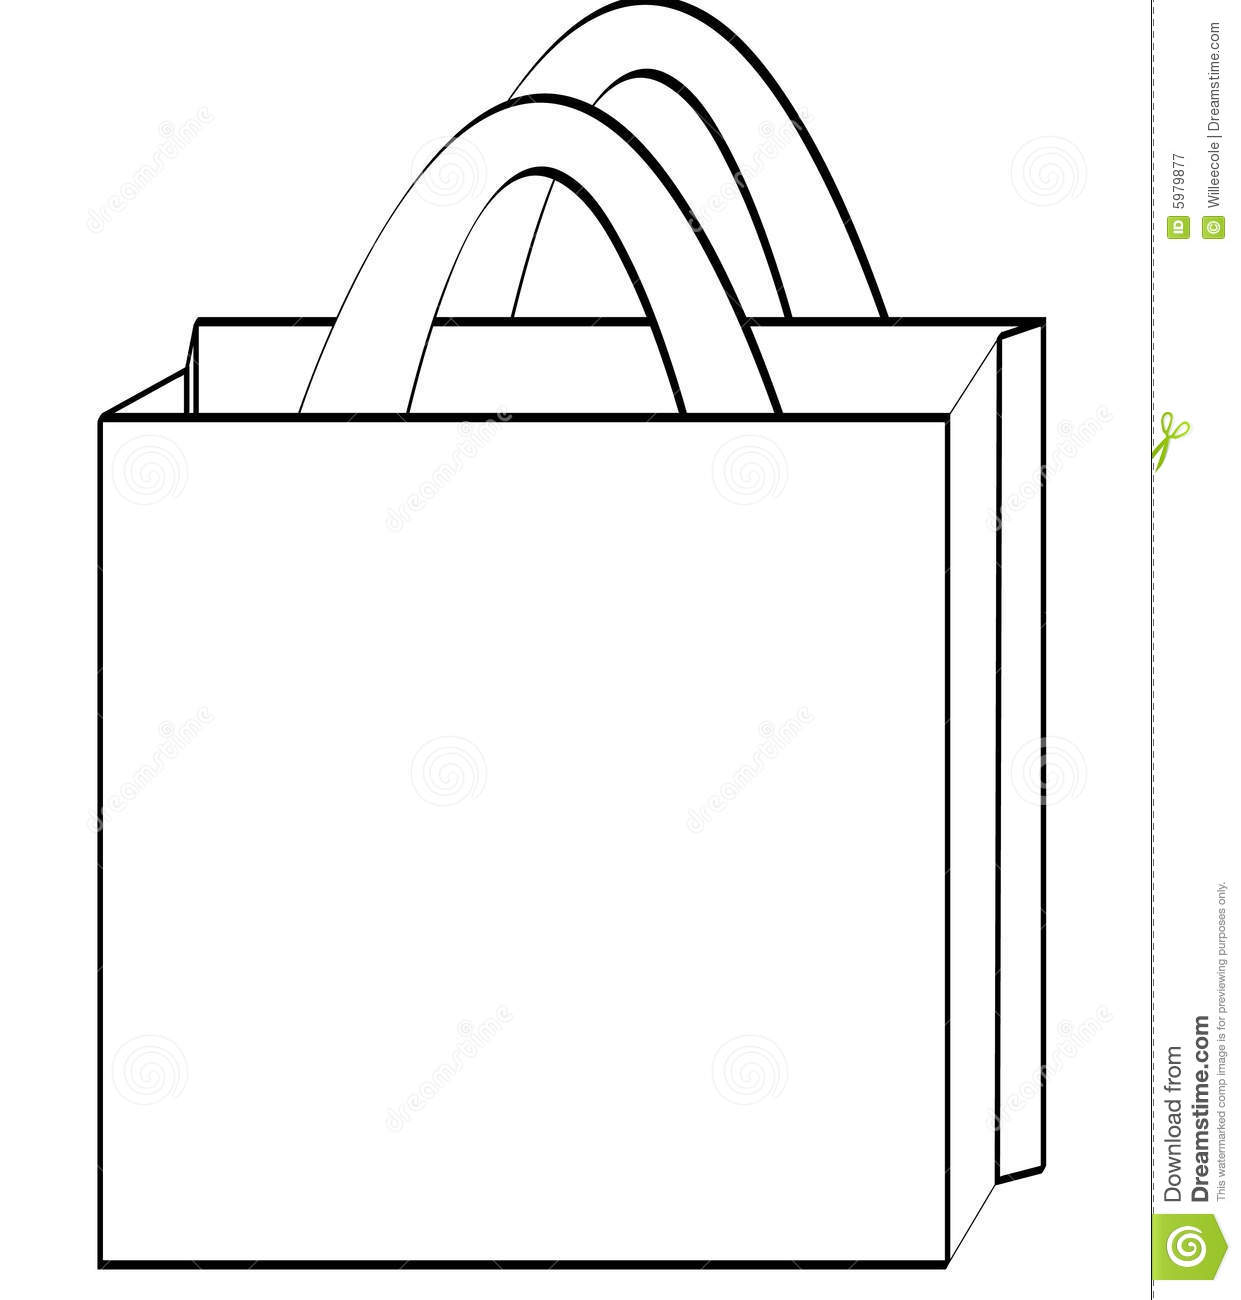 Purse clip art black and white